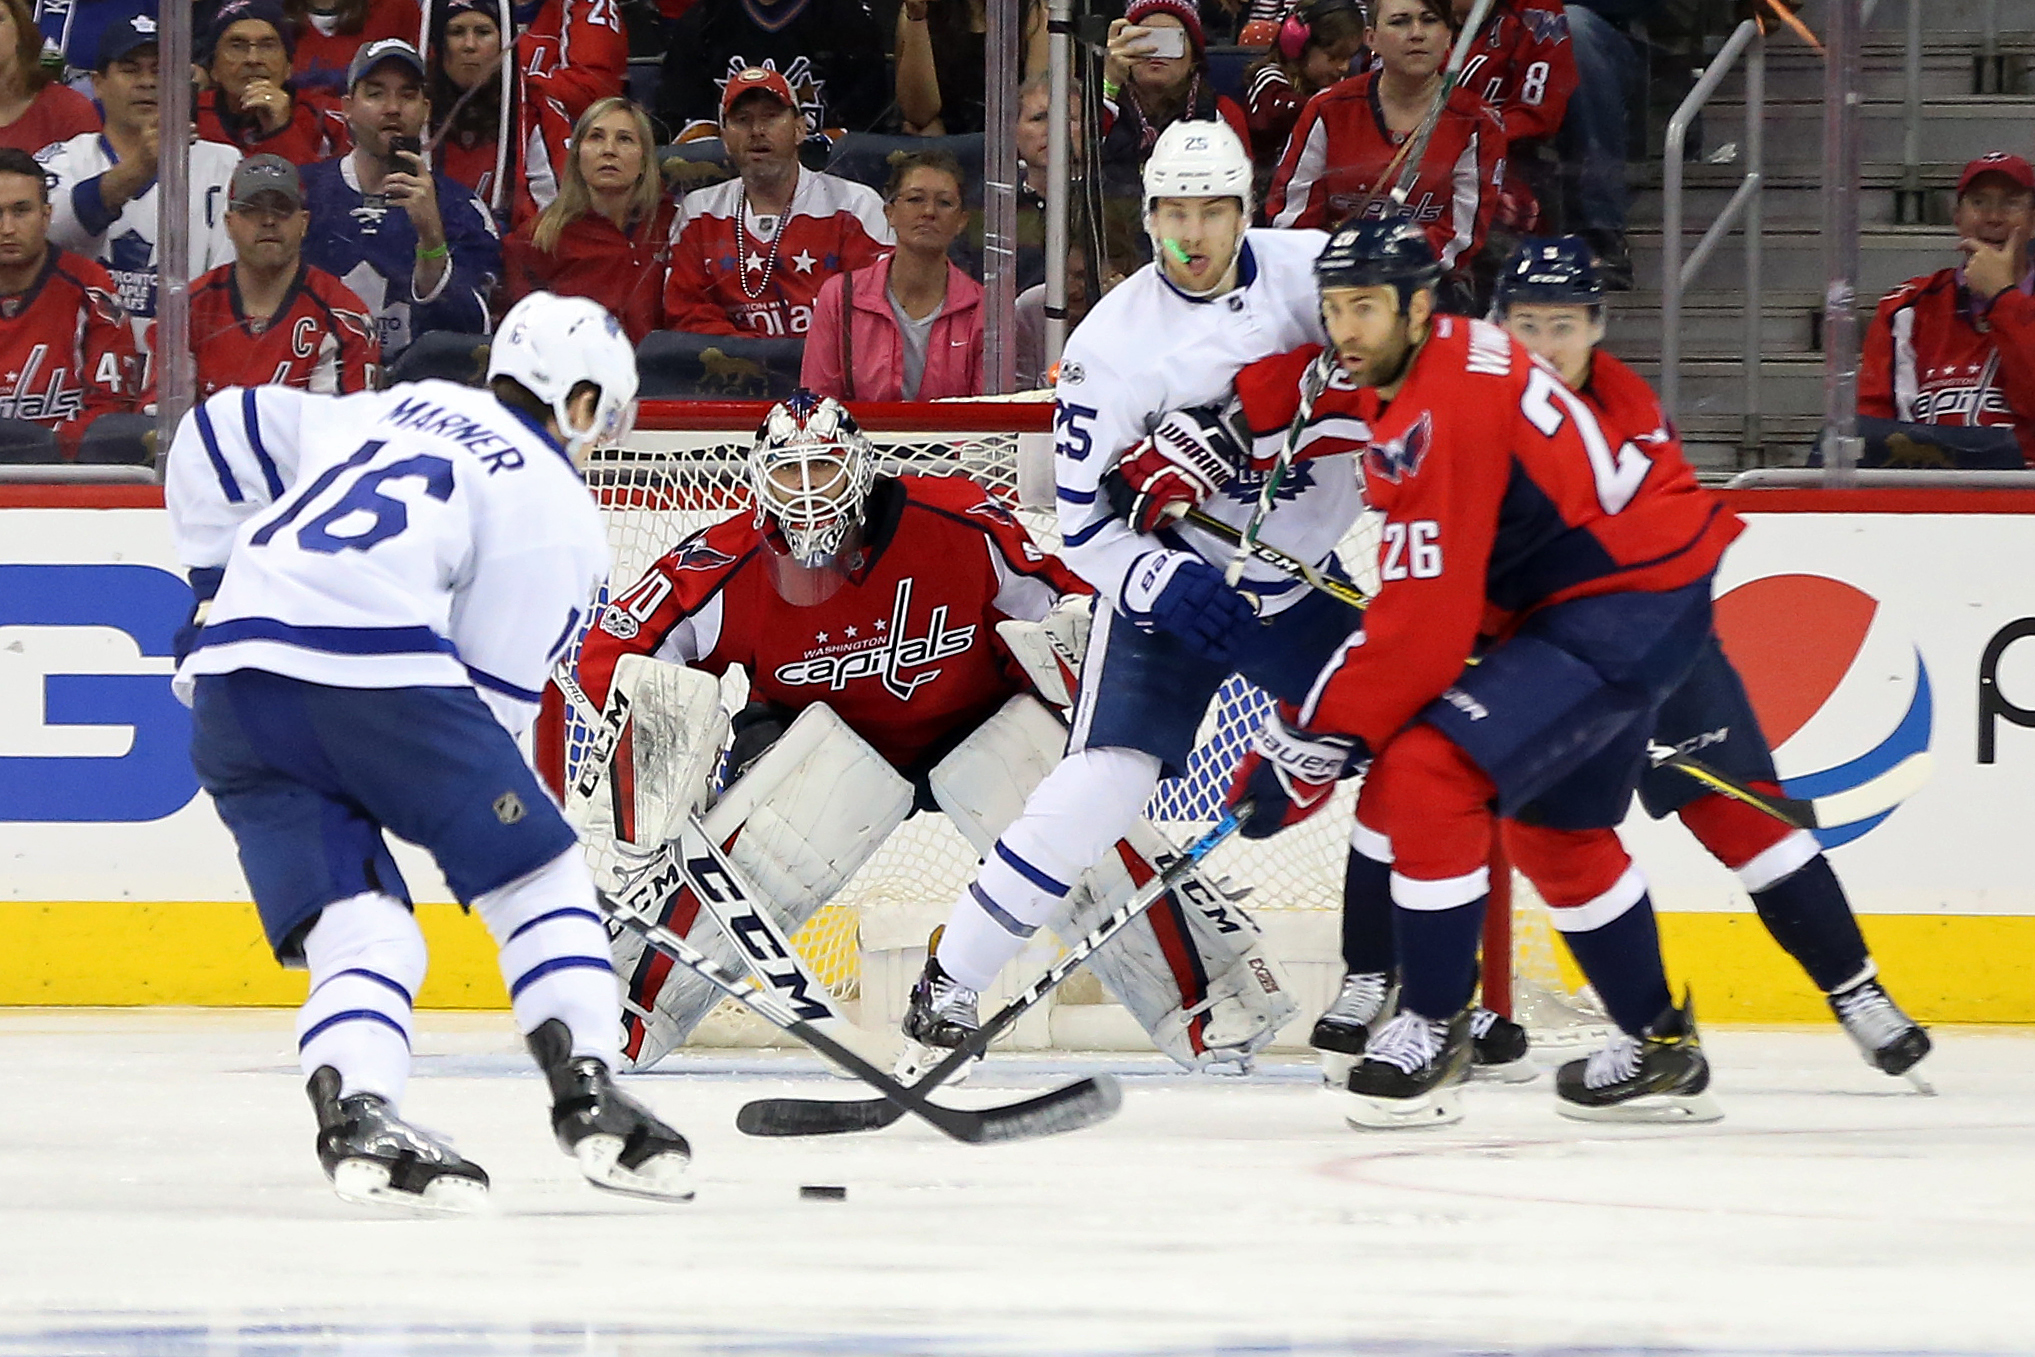 10024491-nhl-stanley-cup-playoffs-toronto-maple-leafs-at-washington-capitals